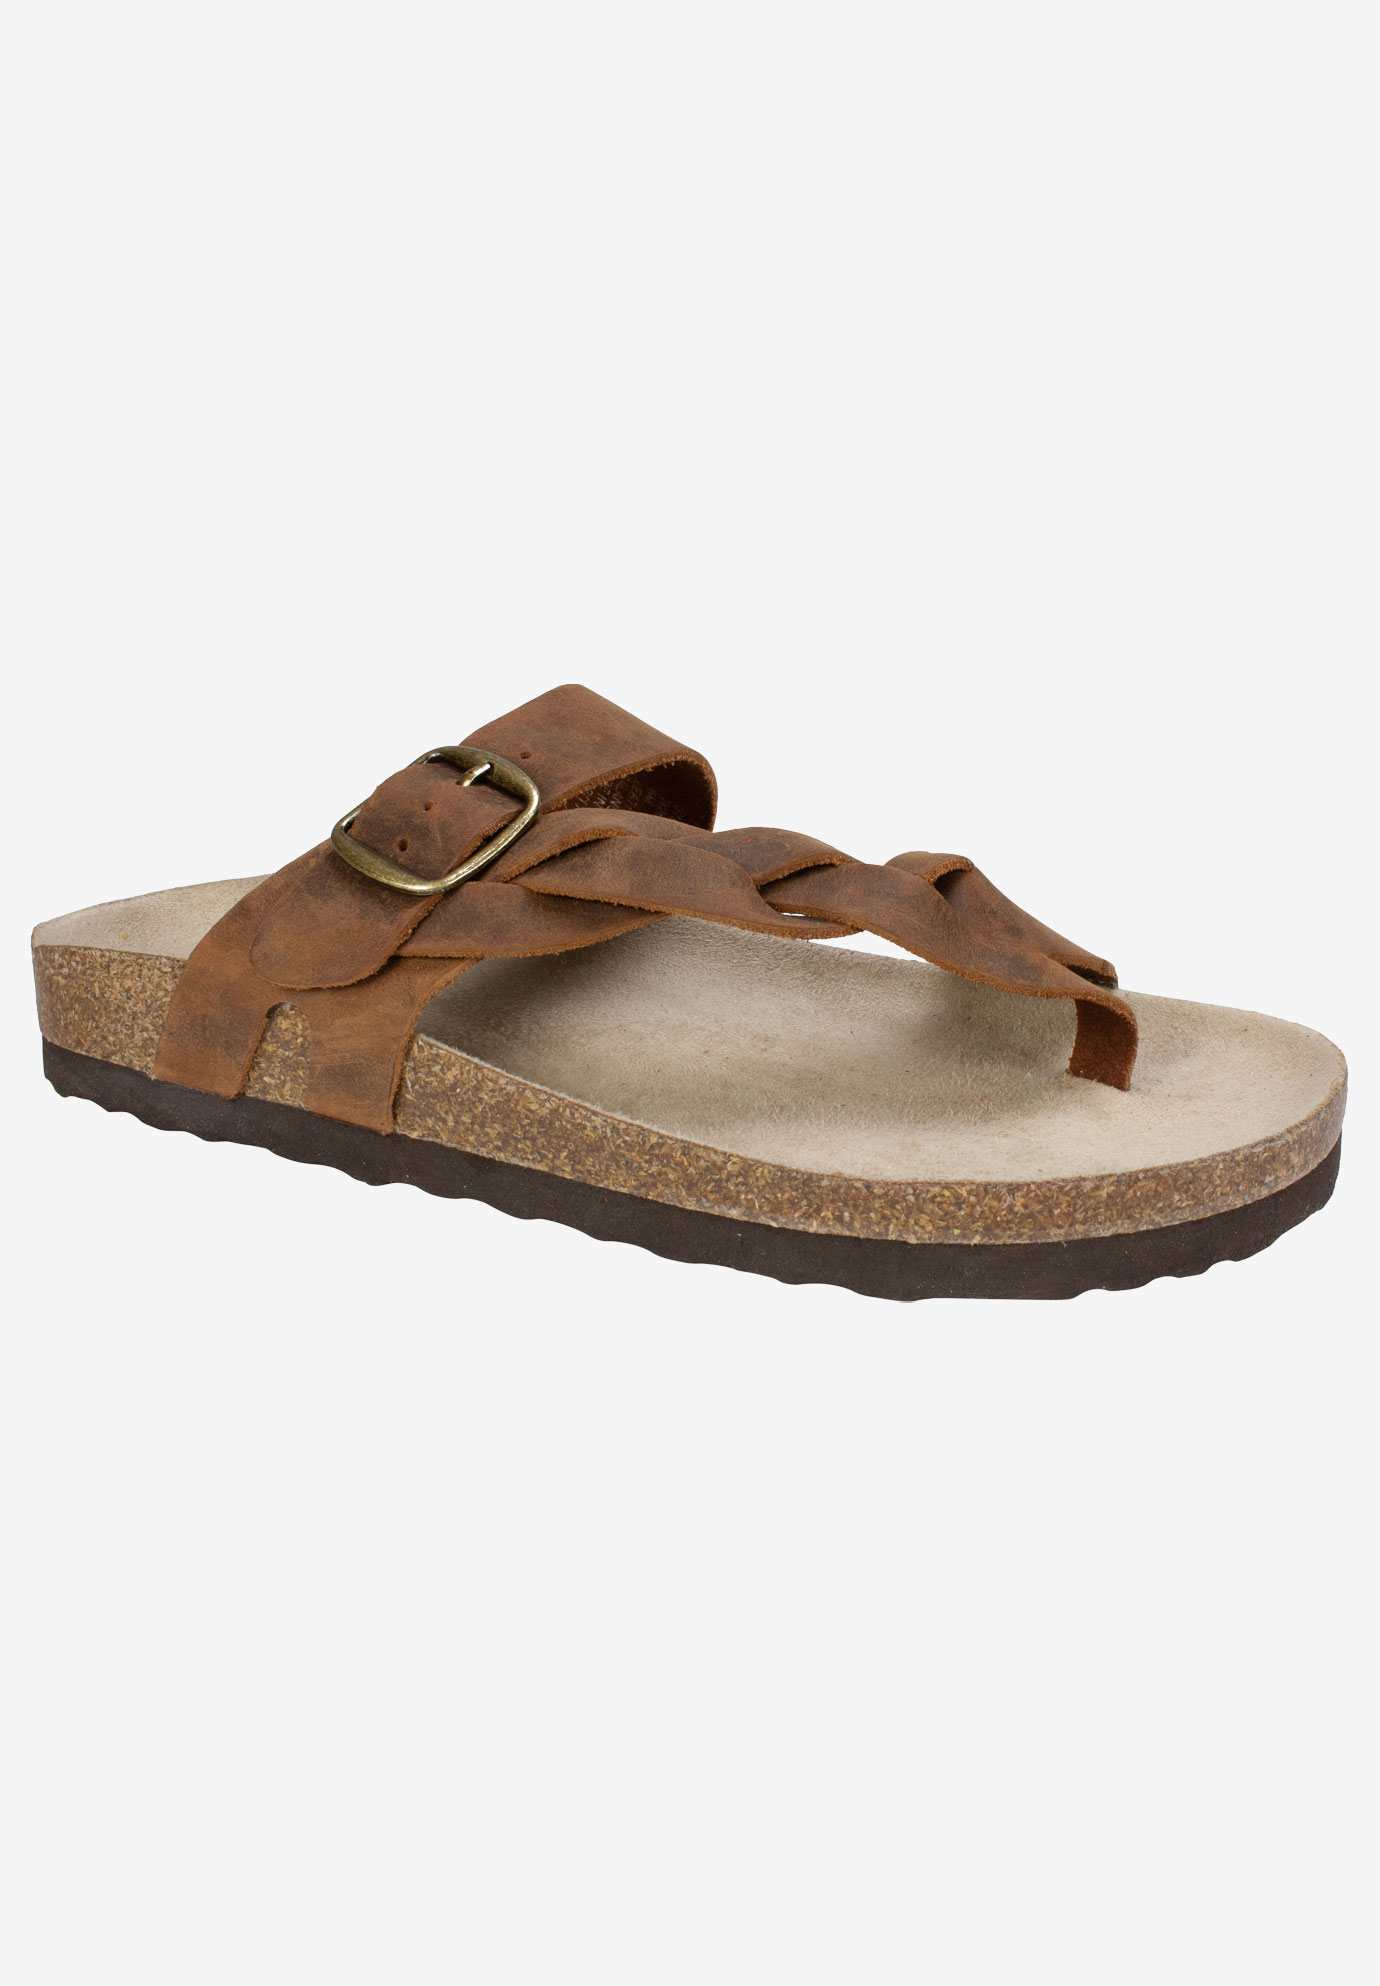 Honor Sandal by White Mountain,